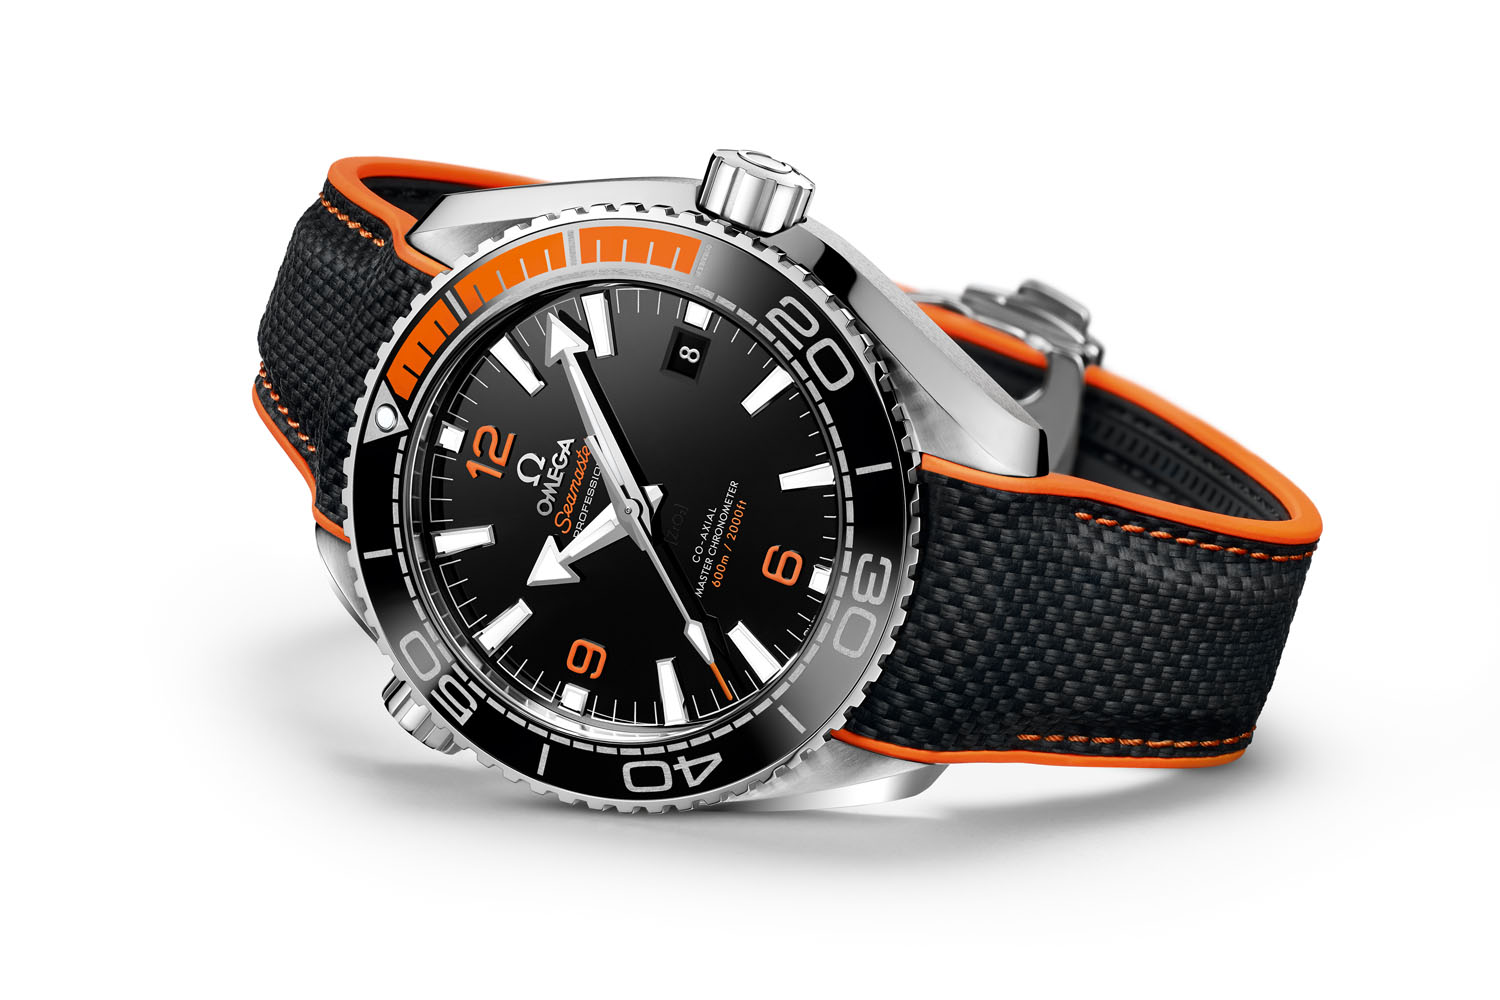 Omega-Seamaster-Planet-Ocean-43.5mm-Automatic-Black-and-Orange-Master-Chronometer-3